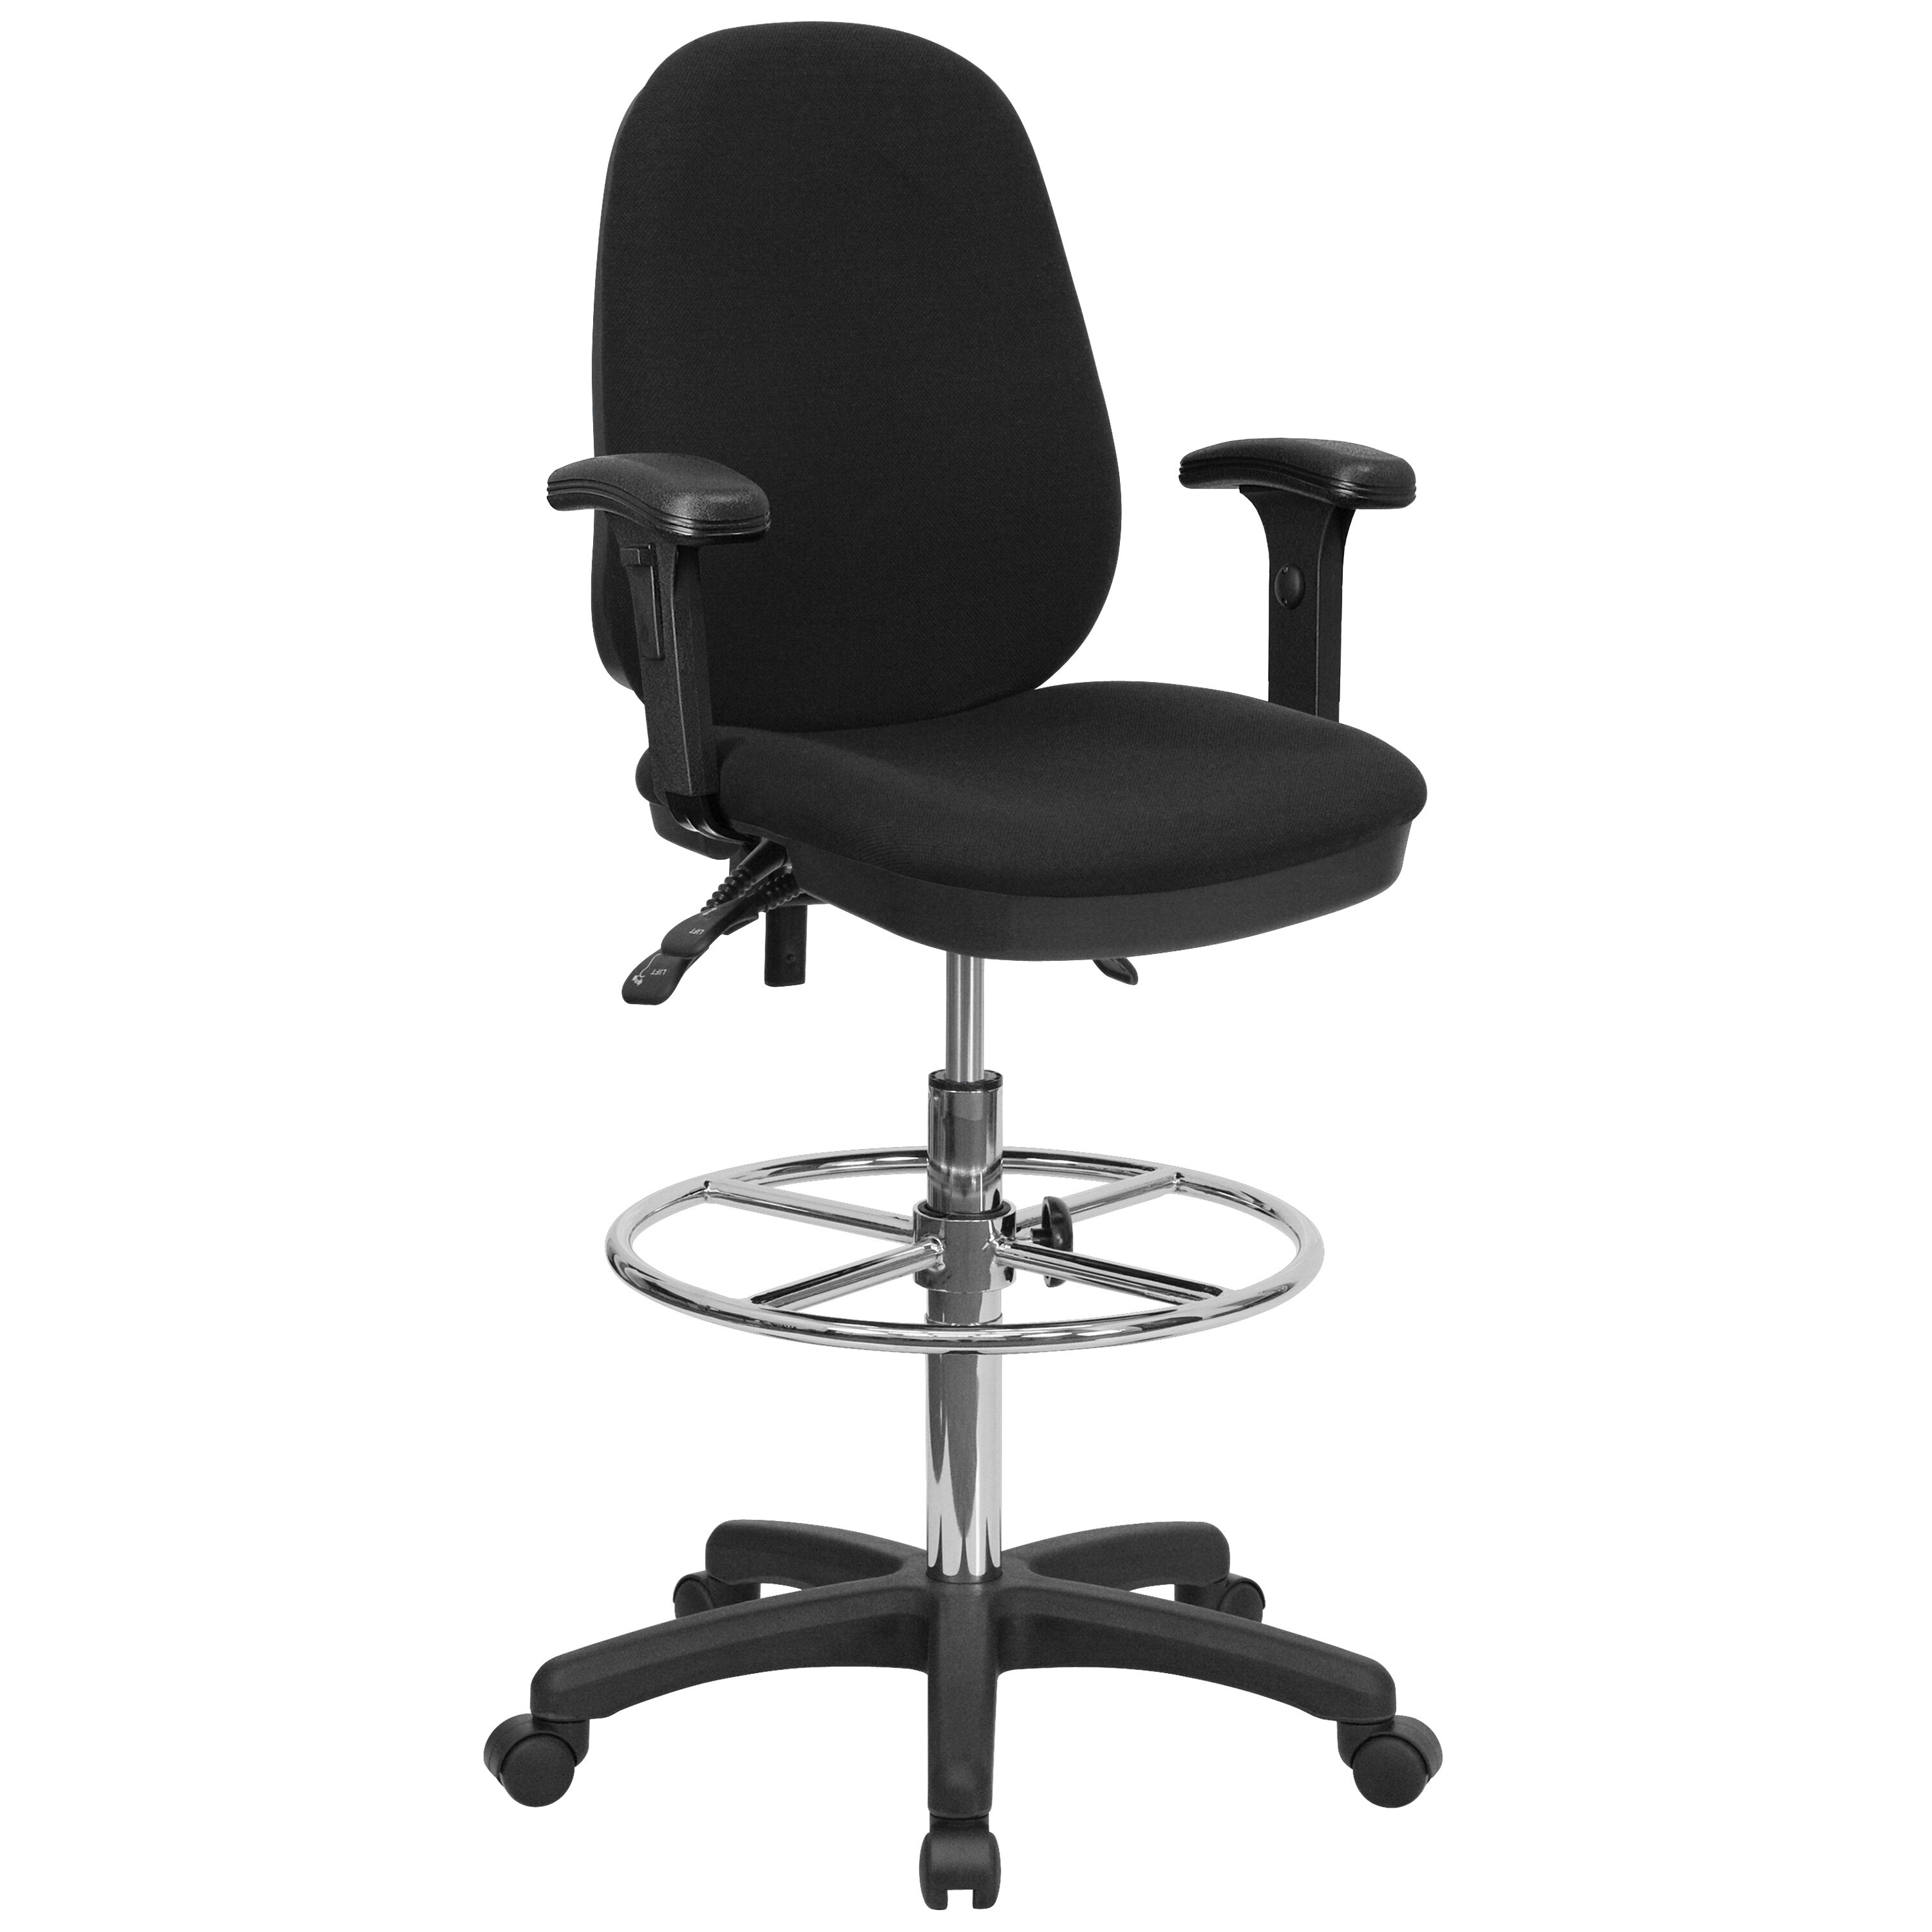 ... Our Black Multifunction Ergonomic Drafting Chair With Adjustable Foot  Ring And Adjustable Arms Is On Sale ...